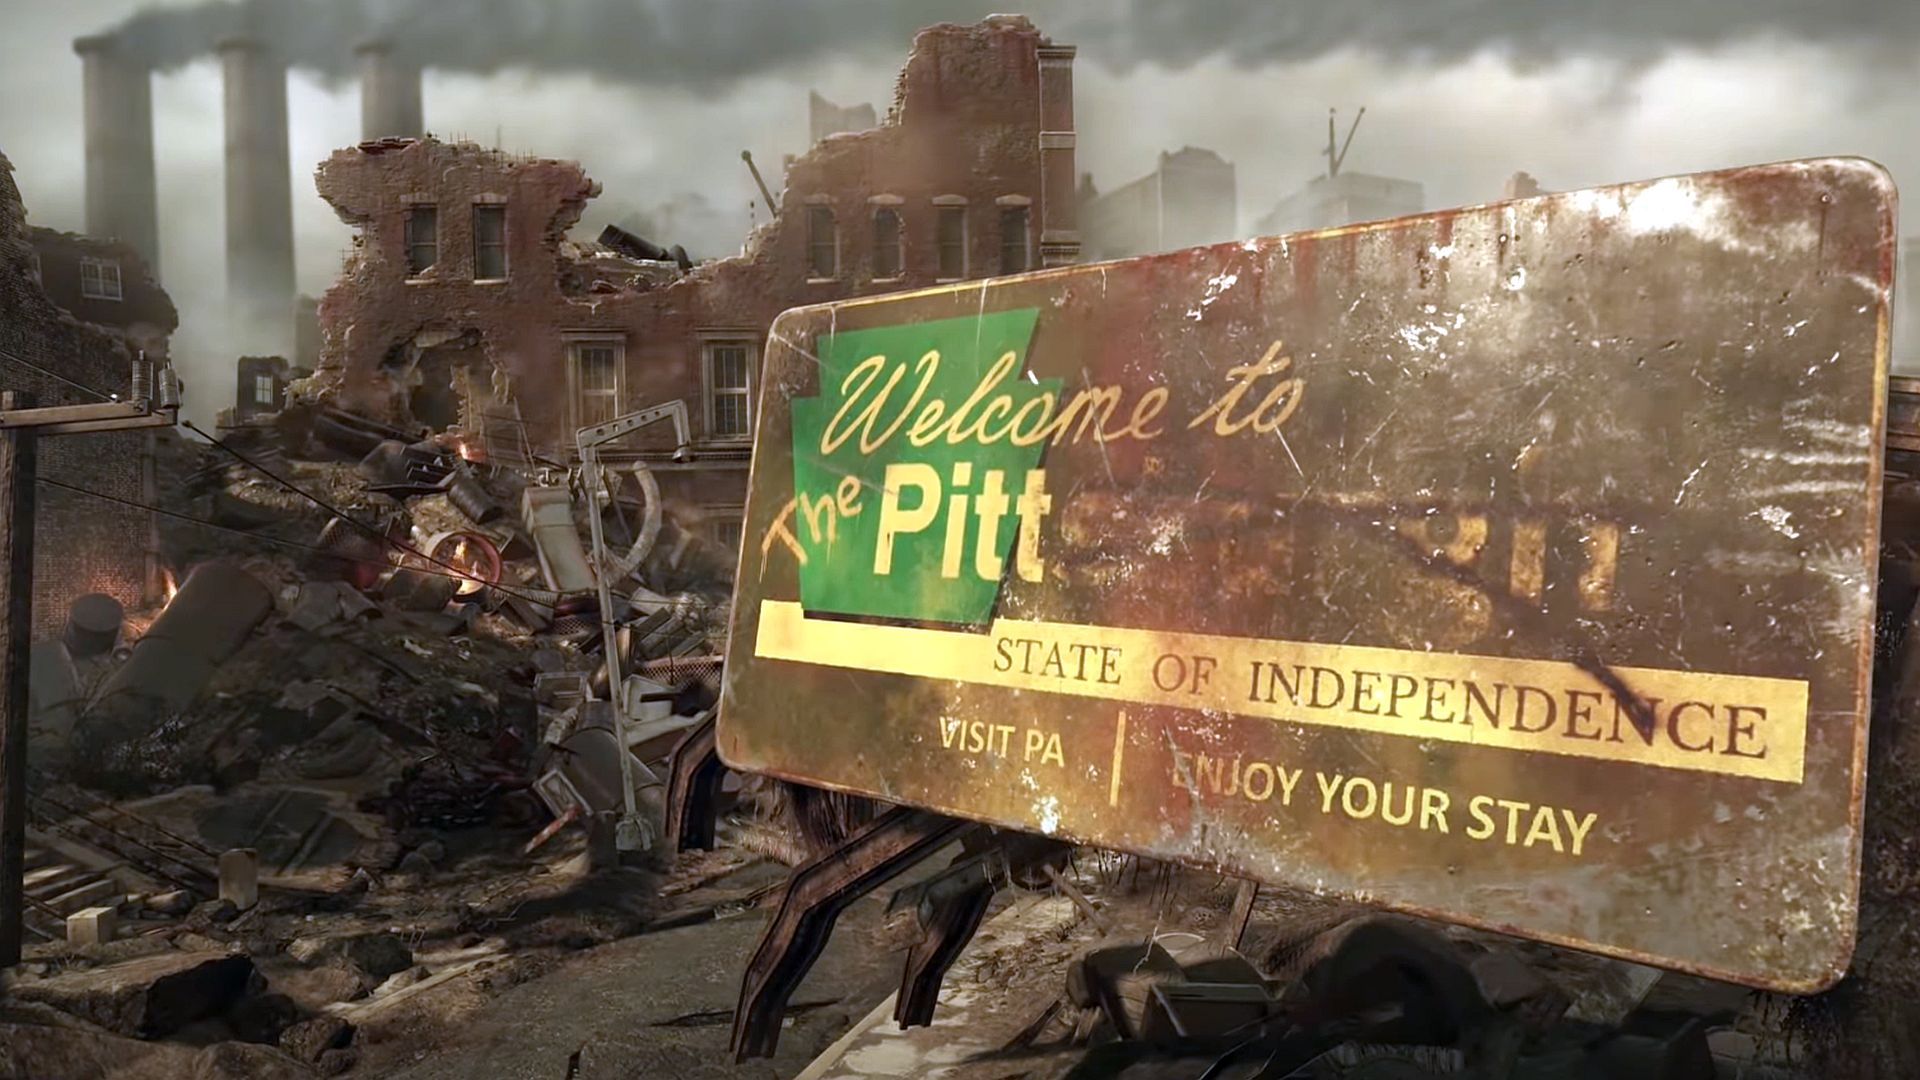 Fallout 76 takes players beyond Appalachia for the first time next year